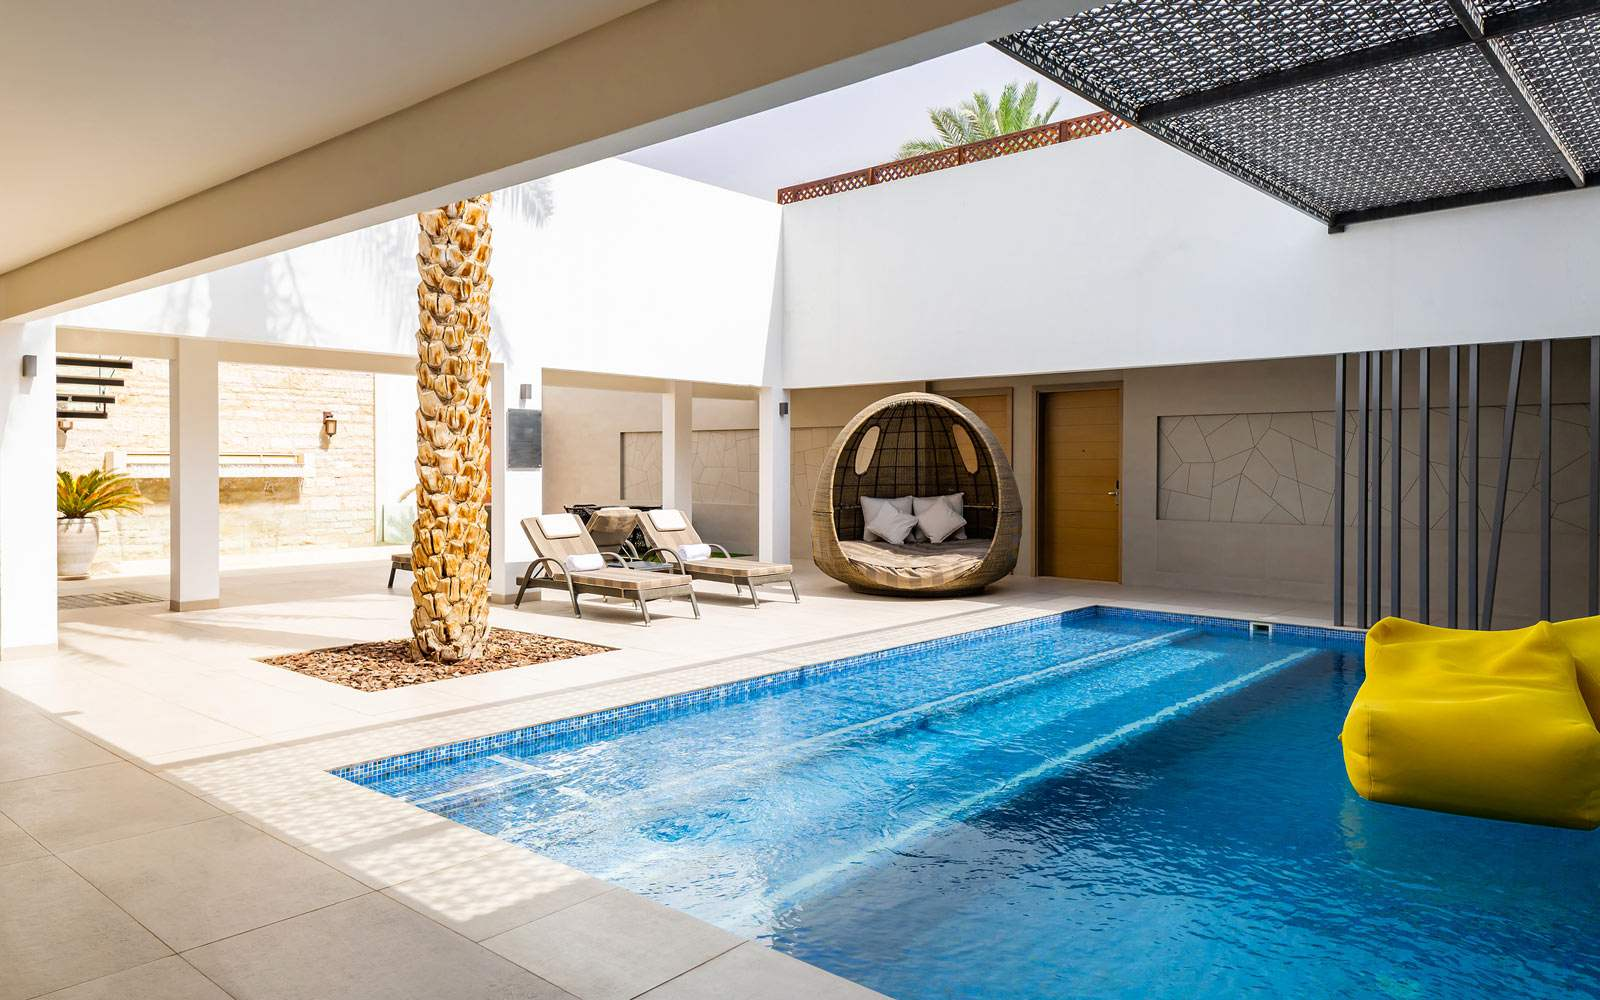 Melia Desert Villa Layali Private pool